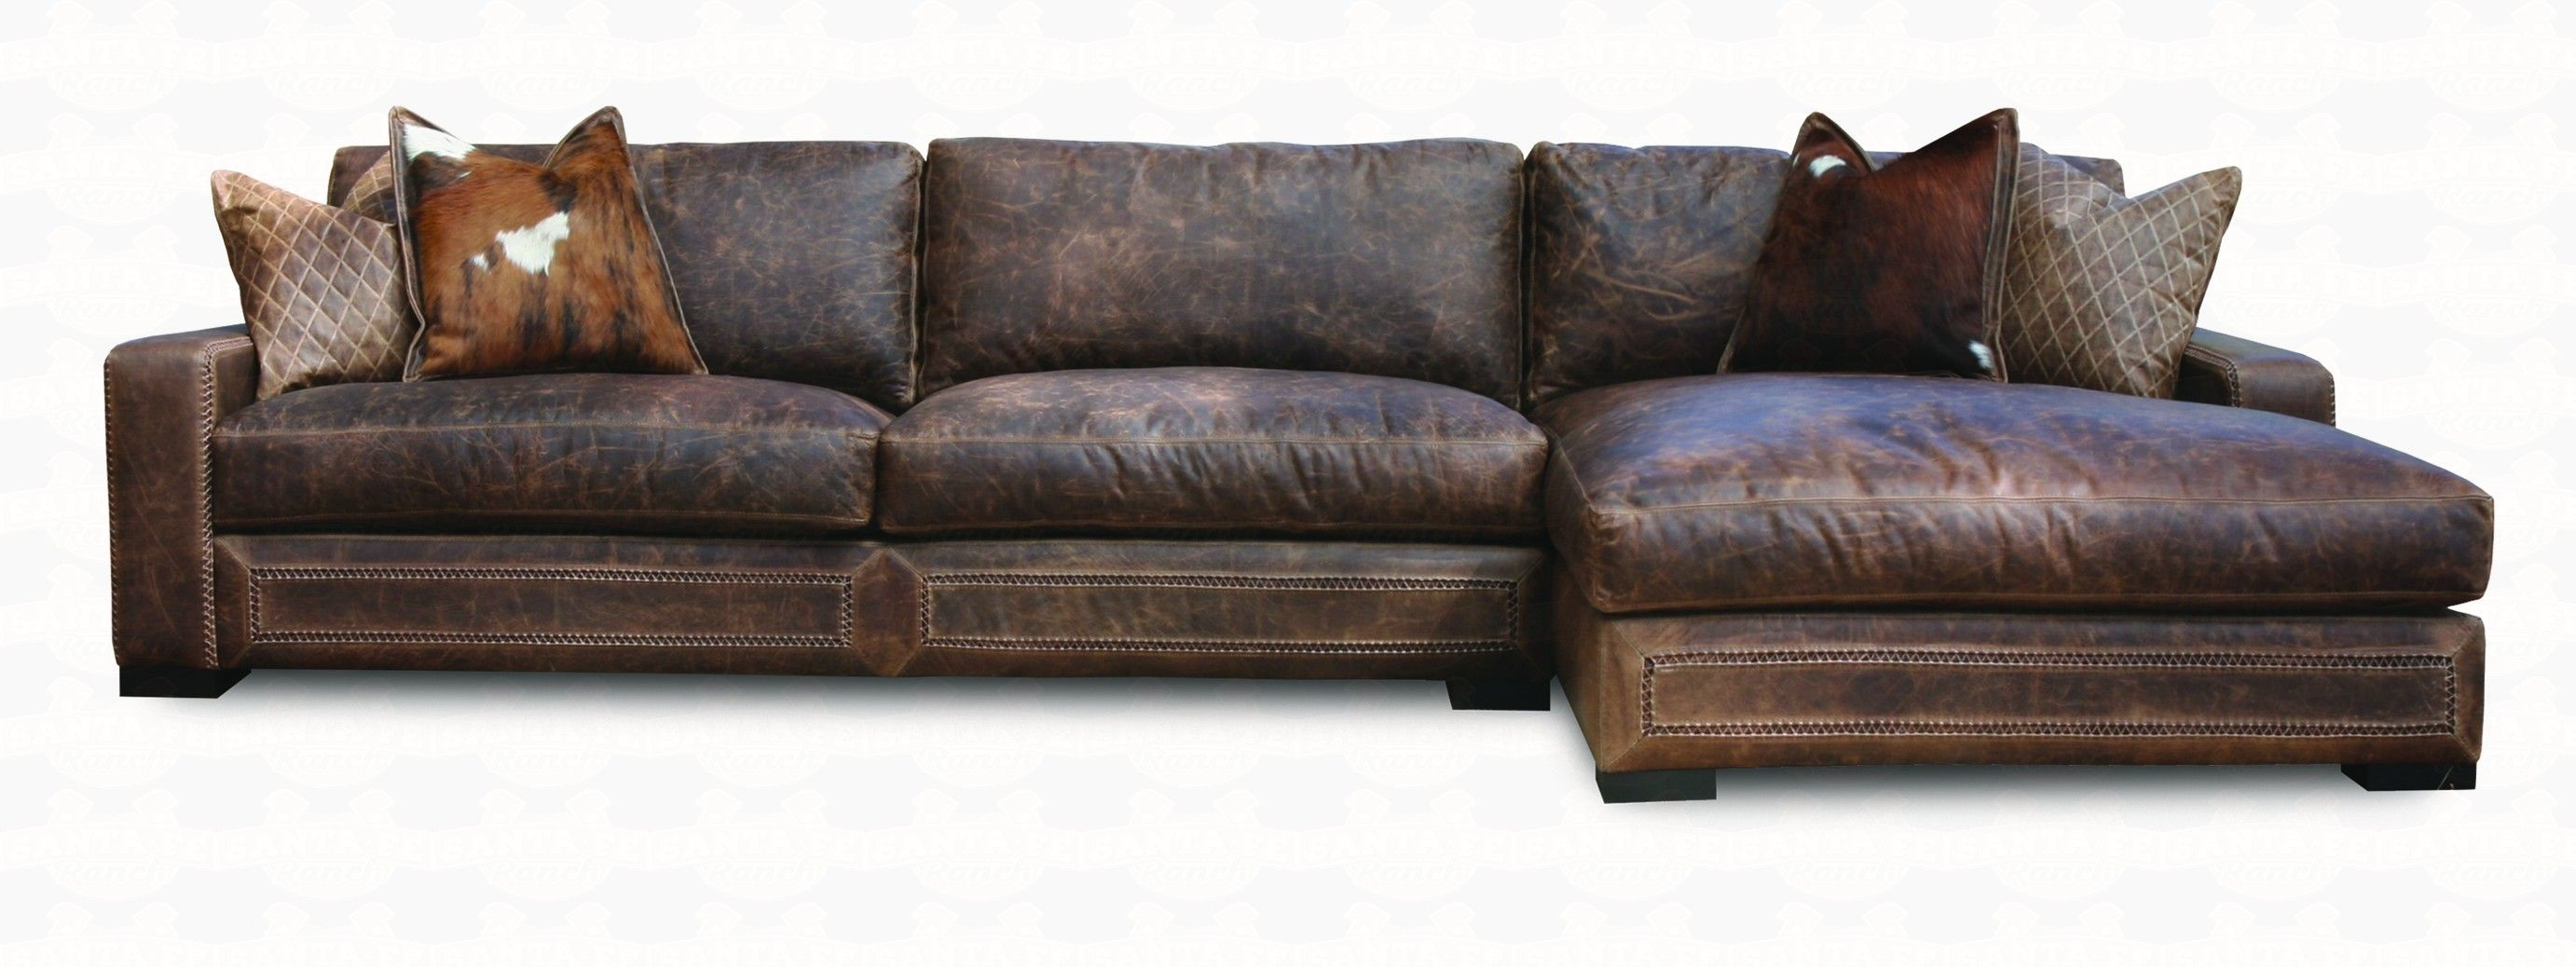 Eleanor Rigby Downtown Cowboy Leather Sectional Sofa